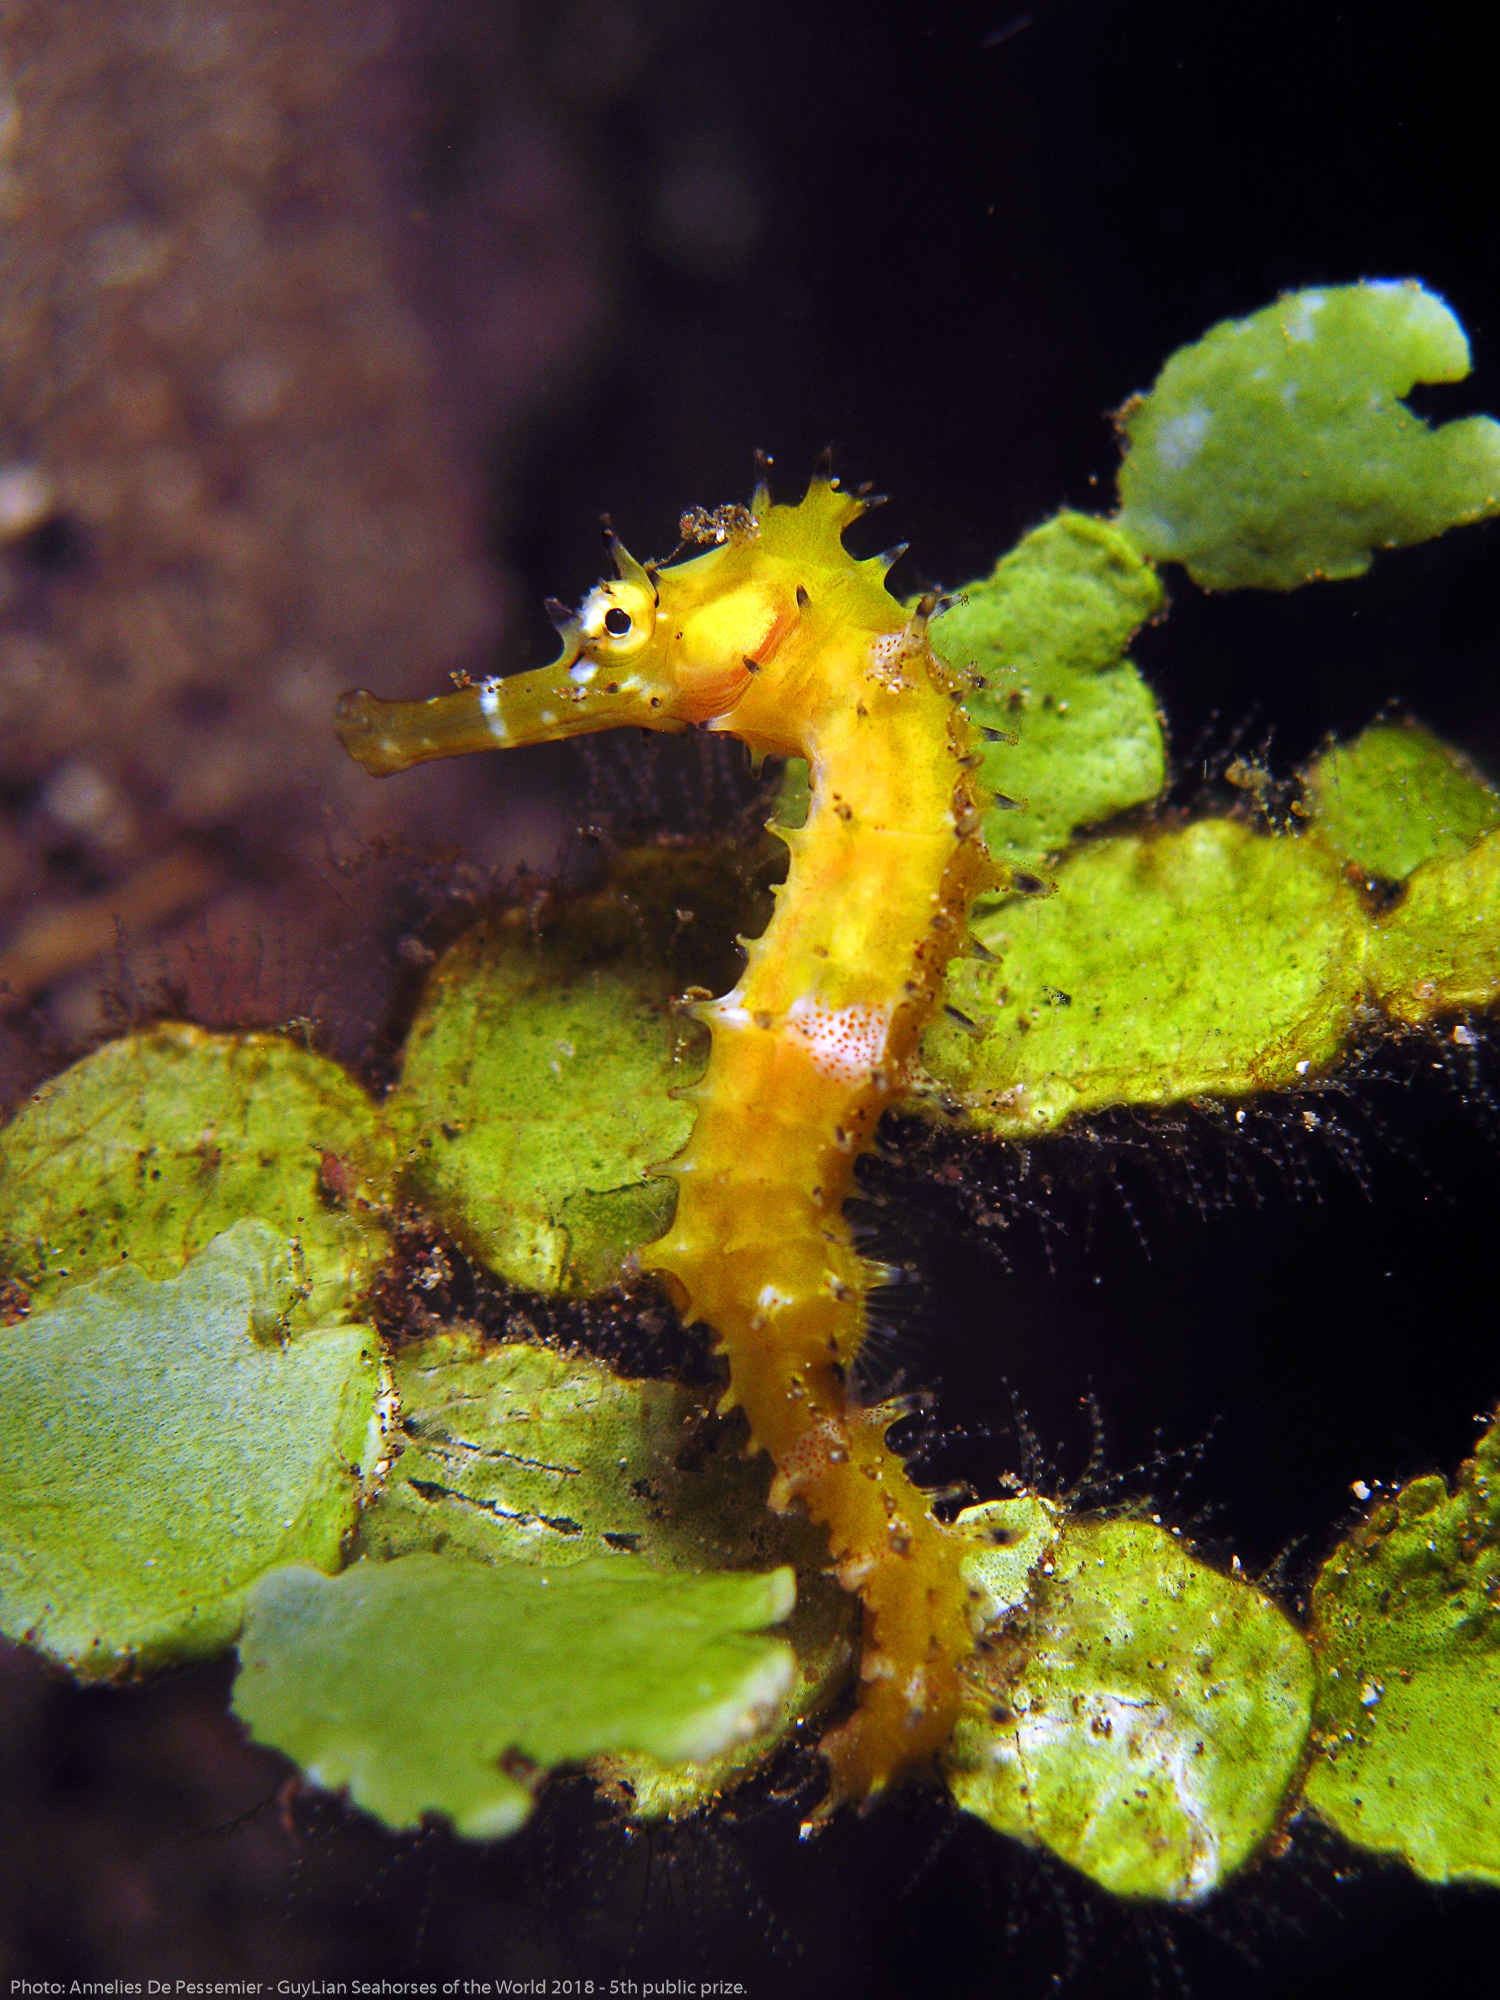 5th Public Prize: Thorny seahorse ( Hippocampus histrix ) in Anilao, the Philippines. Photo by Annelies De Pessemier/Guylian Seahorses of the World.